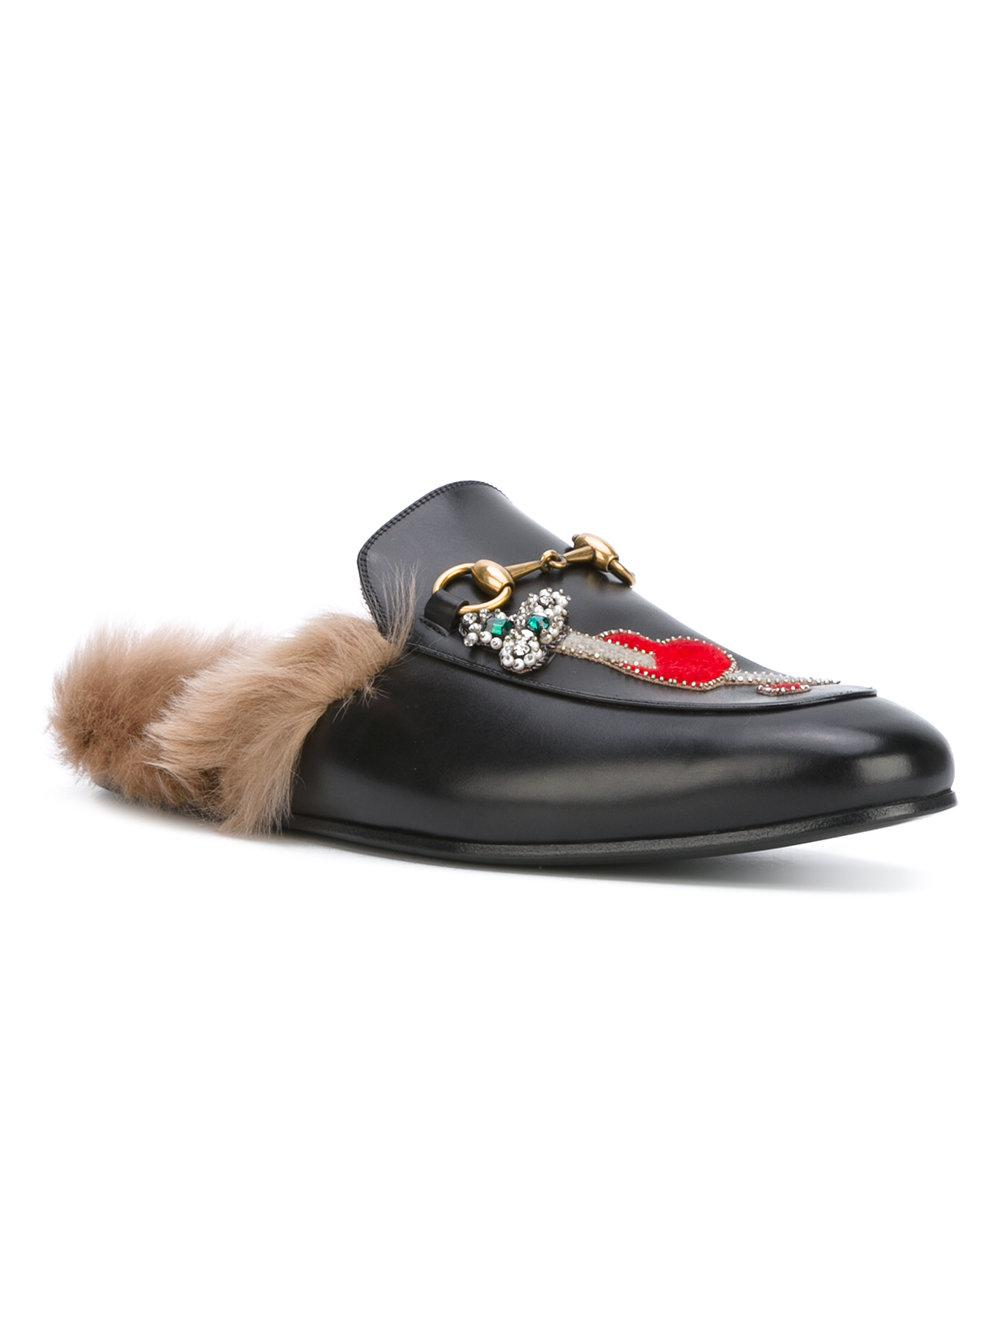 571db04112a Gucci Appliqué Princetown Slippers in Black for Men - Save 34% - Lyst